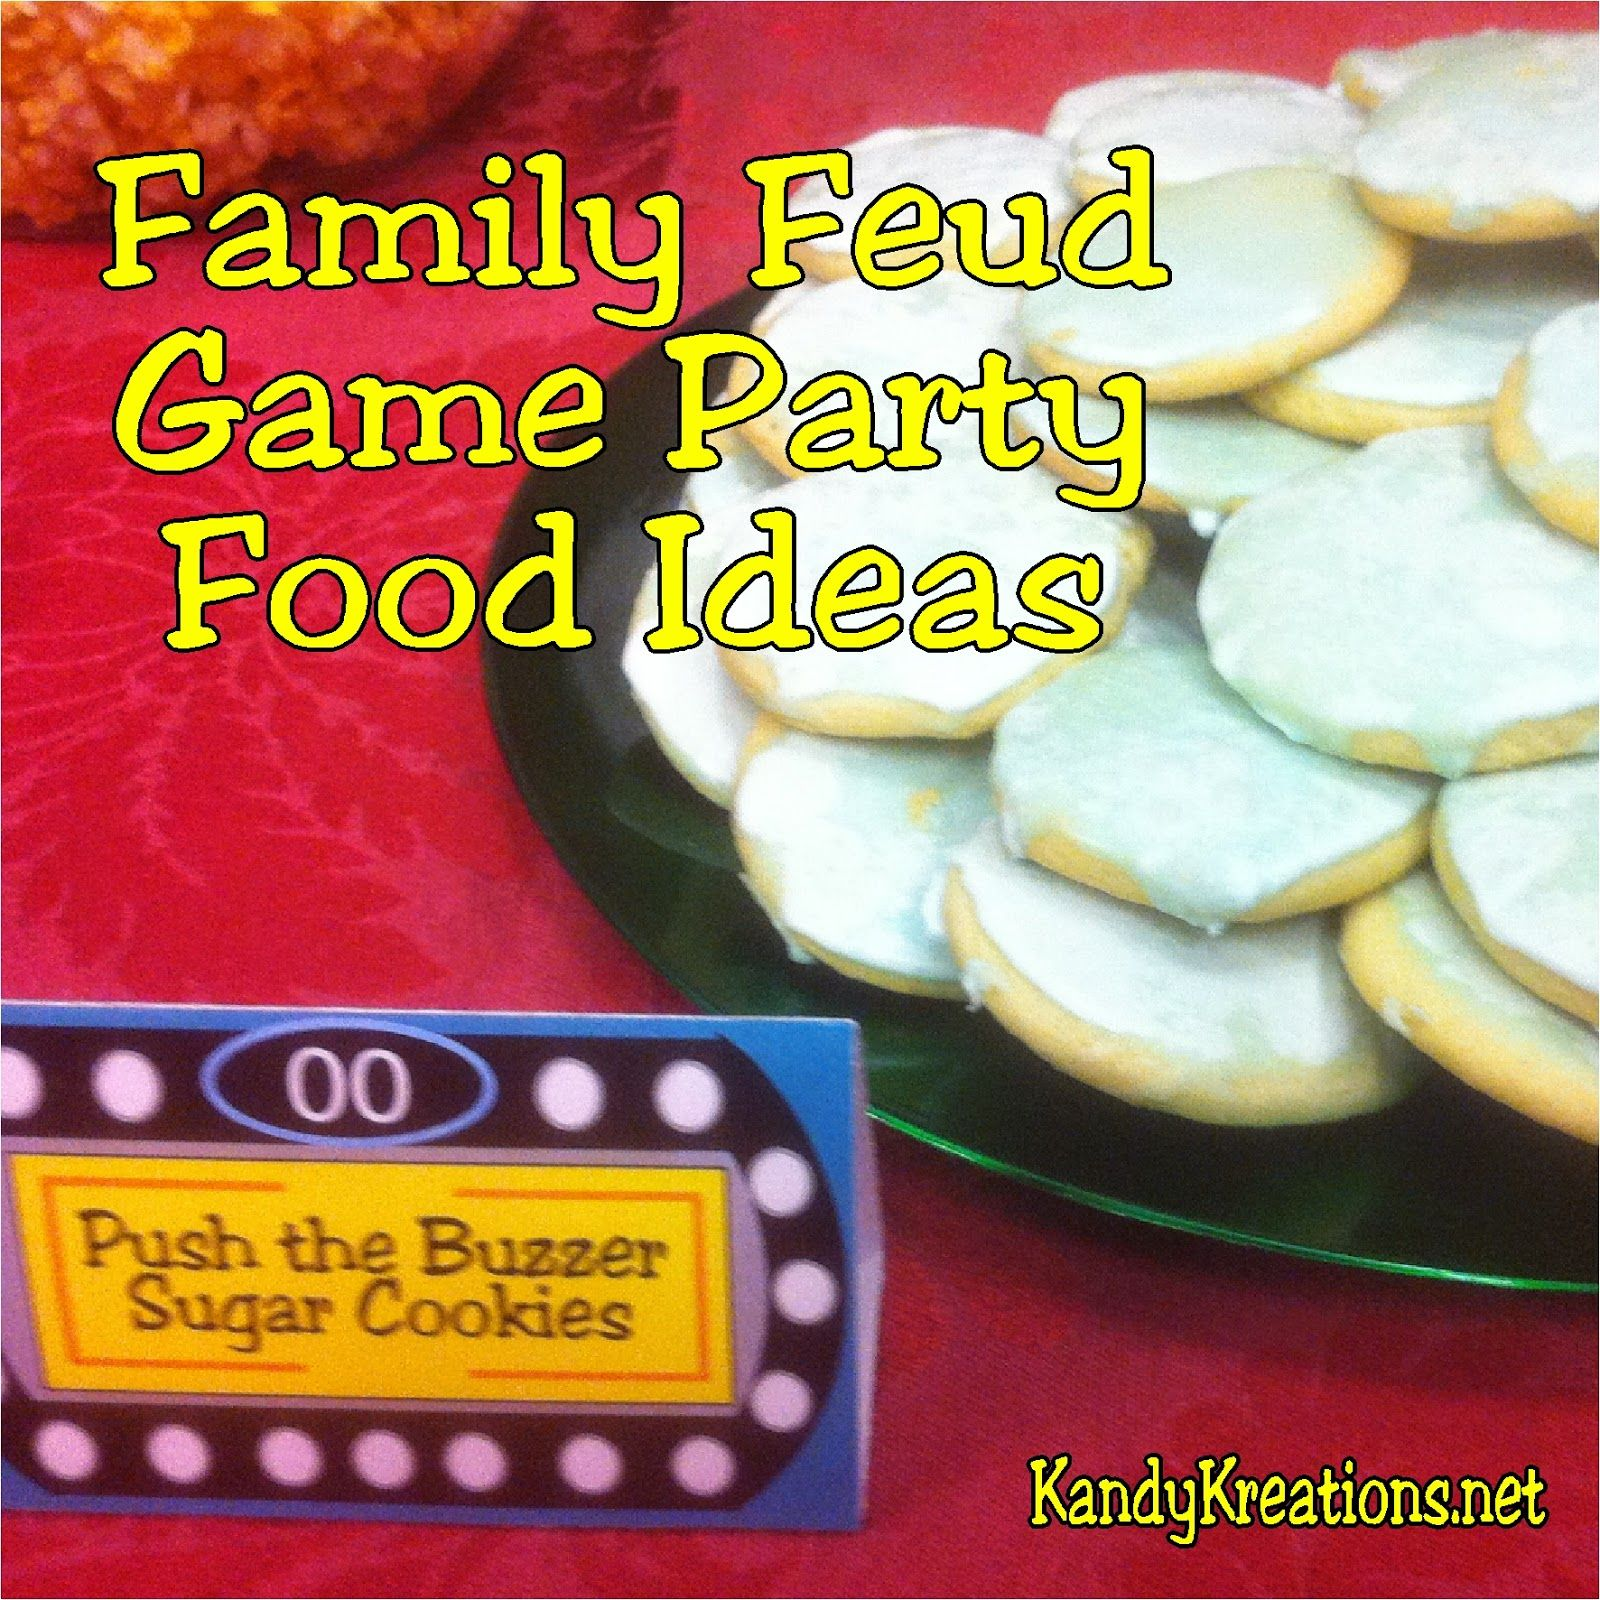 Mormon Family Feud Game Party Food Ideas